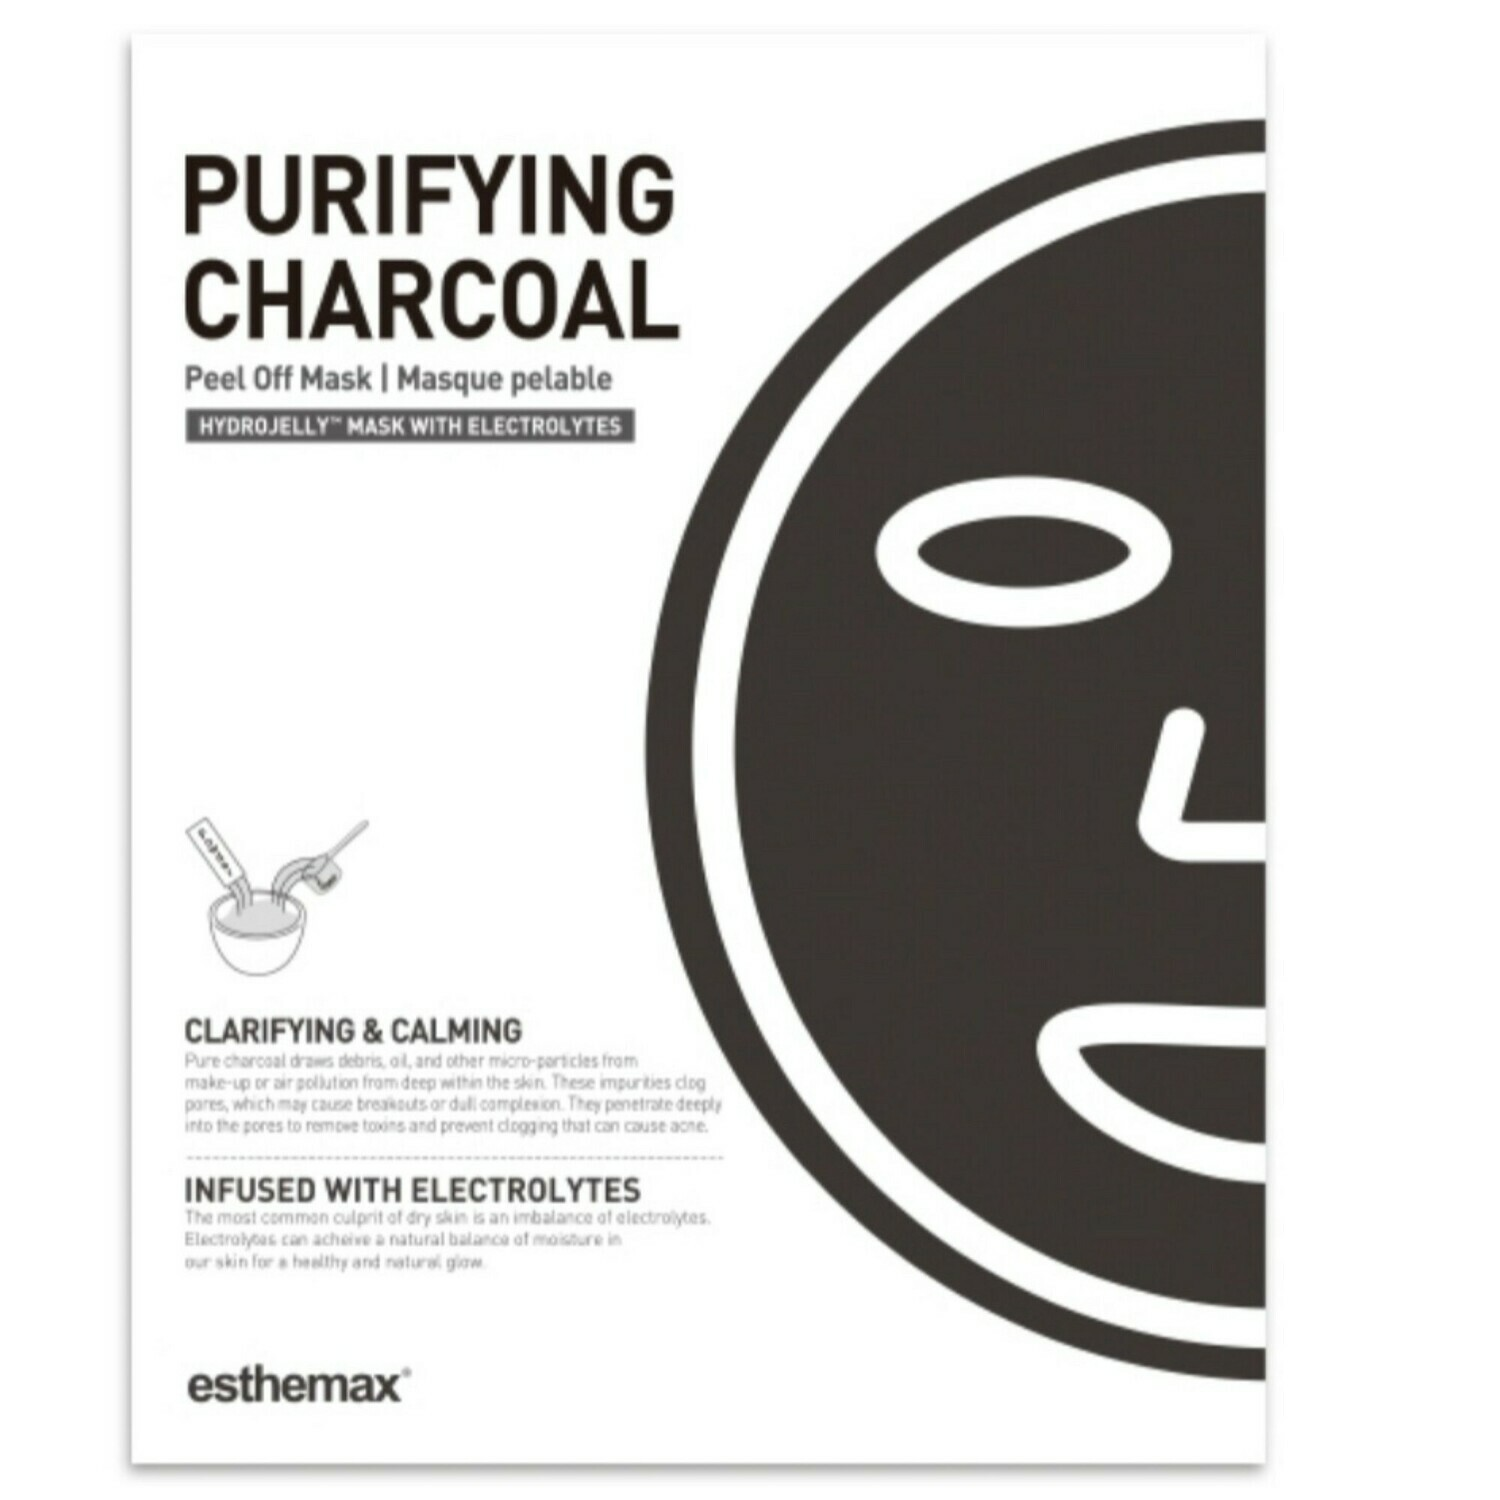 Purifying Charcoal HydroJelly Mask Kit (includes 2 masks)